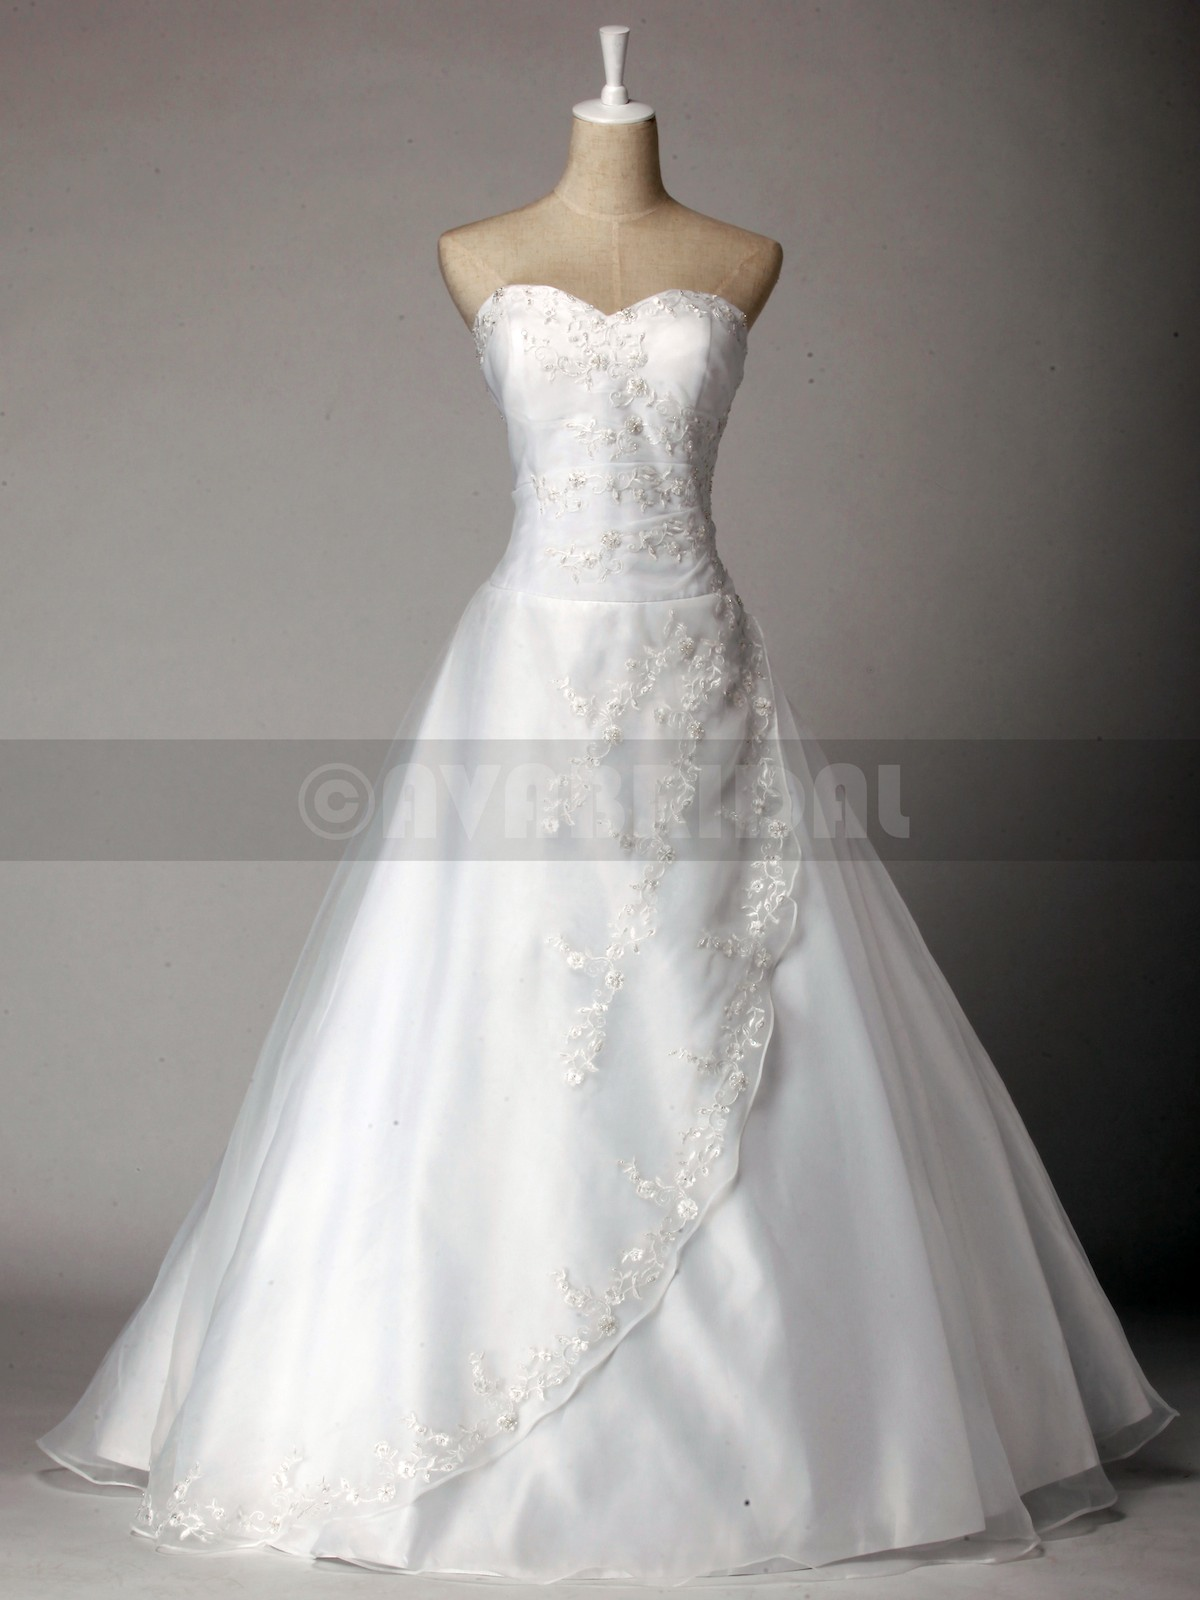 Princess Embroidery Lace Wedding Dress W818-Front